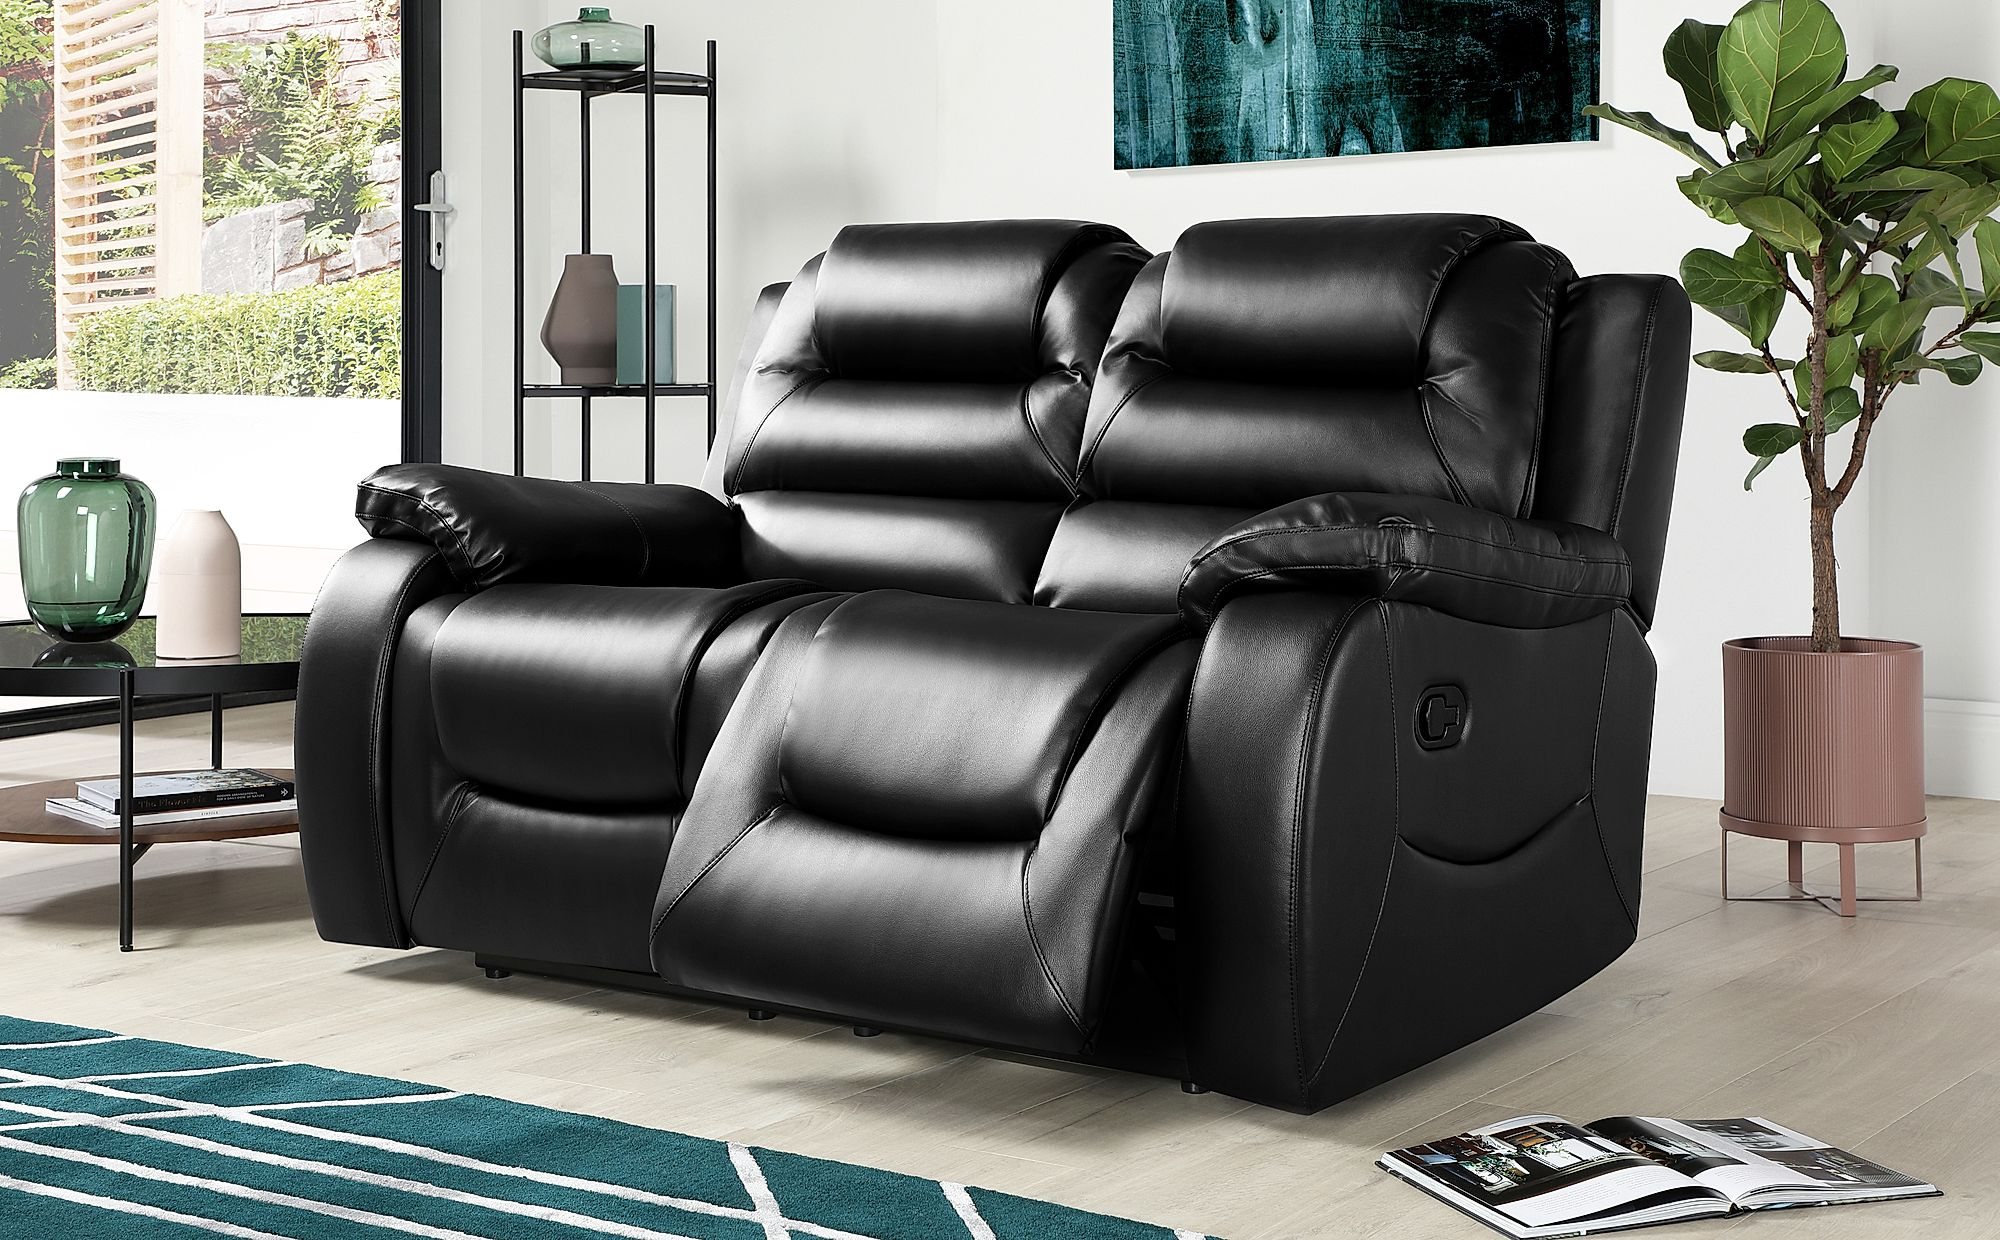 Vancouver 2 Seater Leather Recliner Sofa Black Only 499 99